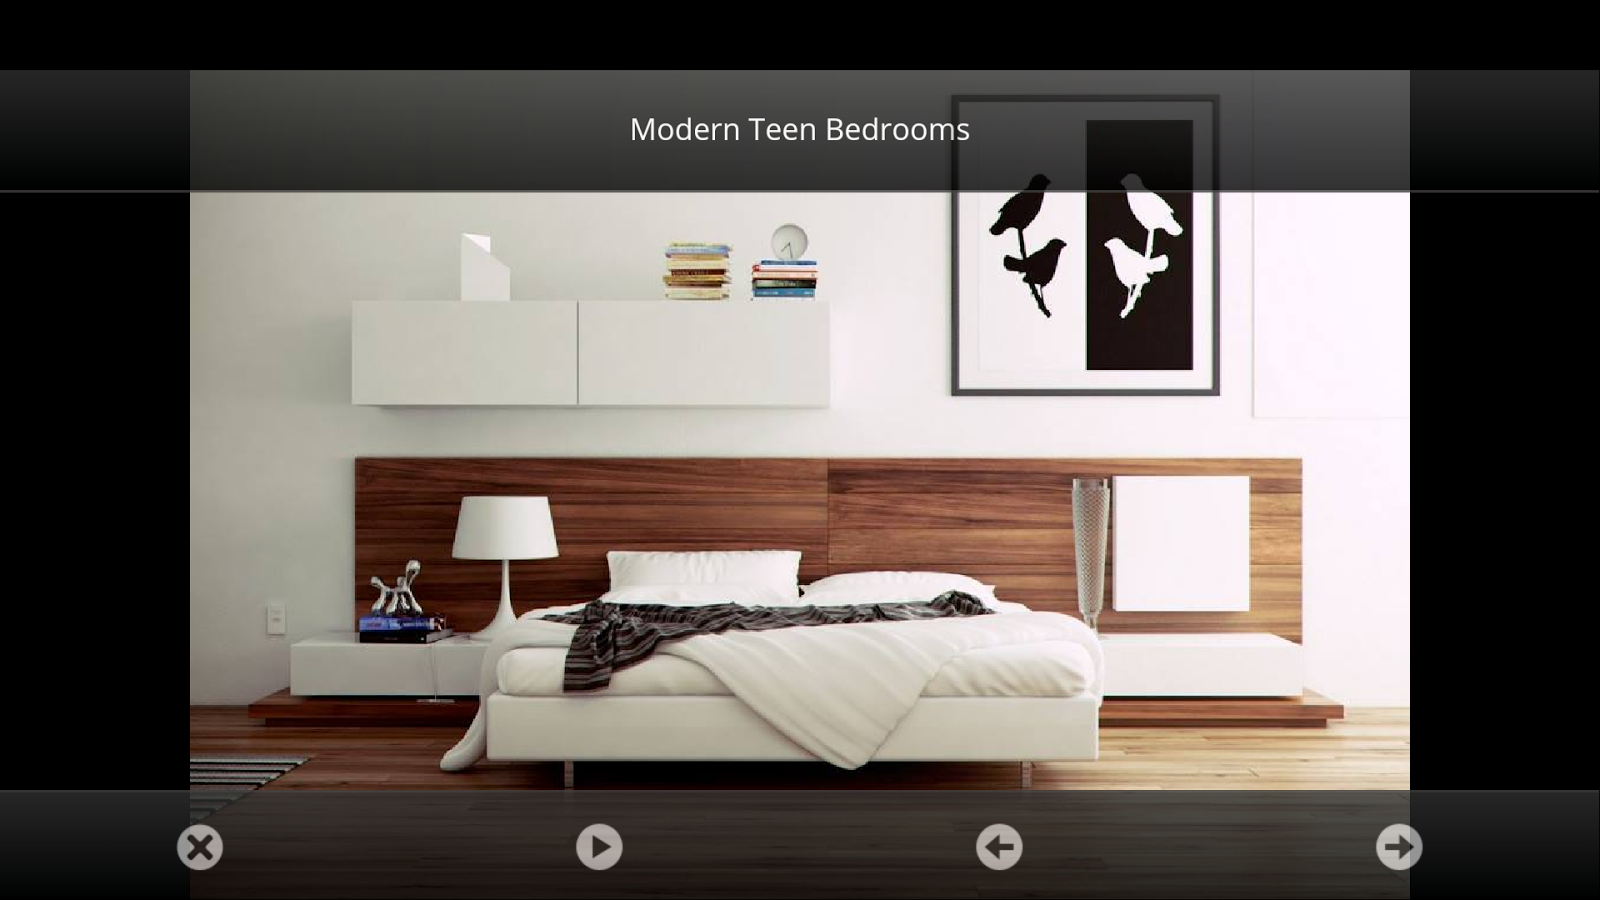 Bedroom decorating ideas android apps on google play for Sleeping room decoration